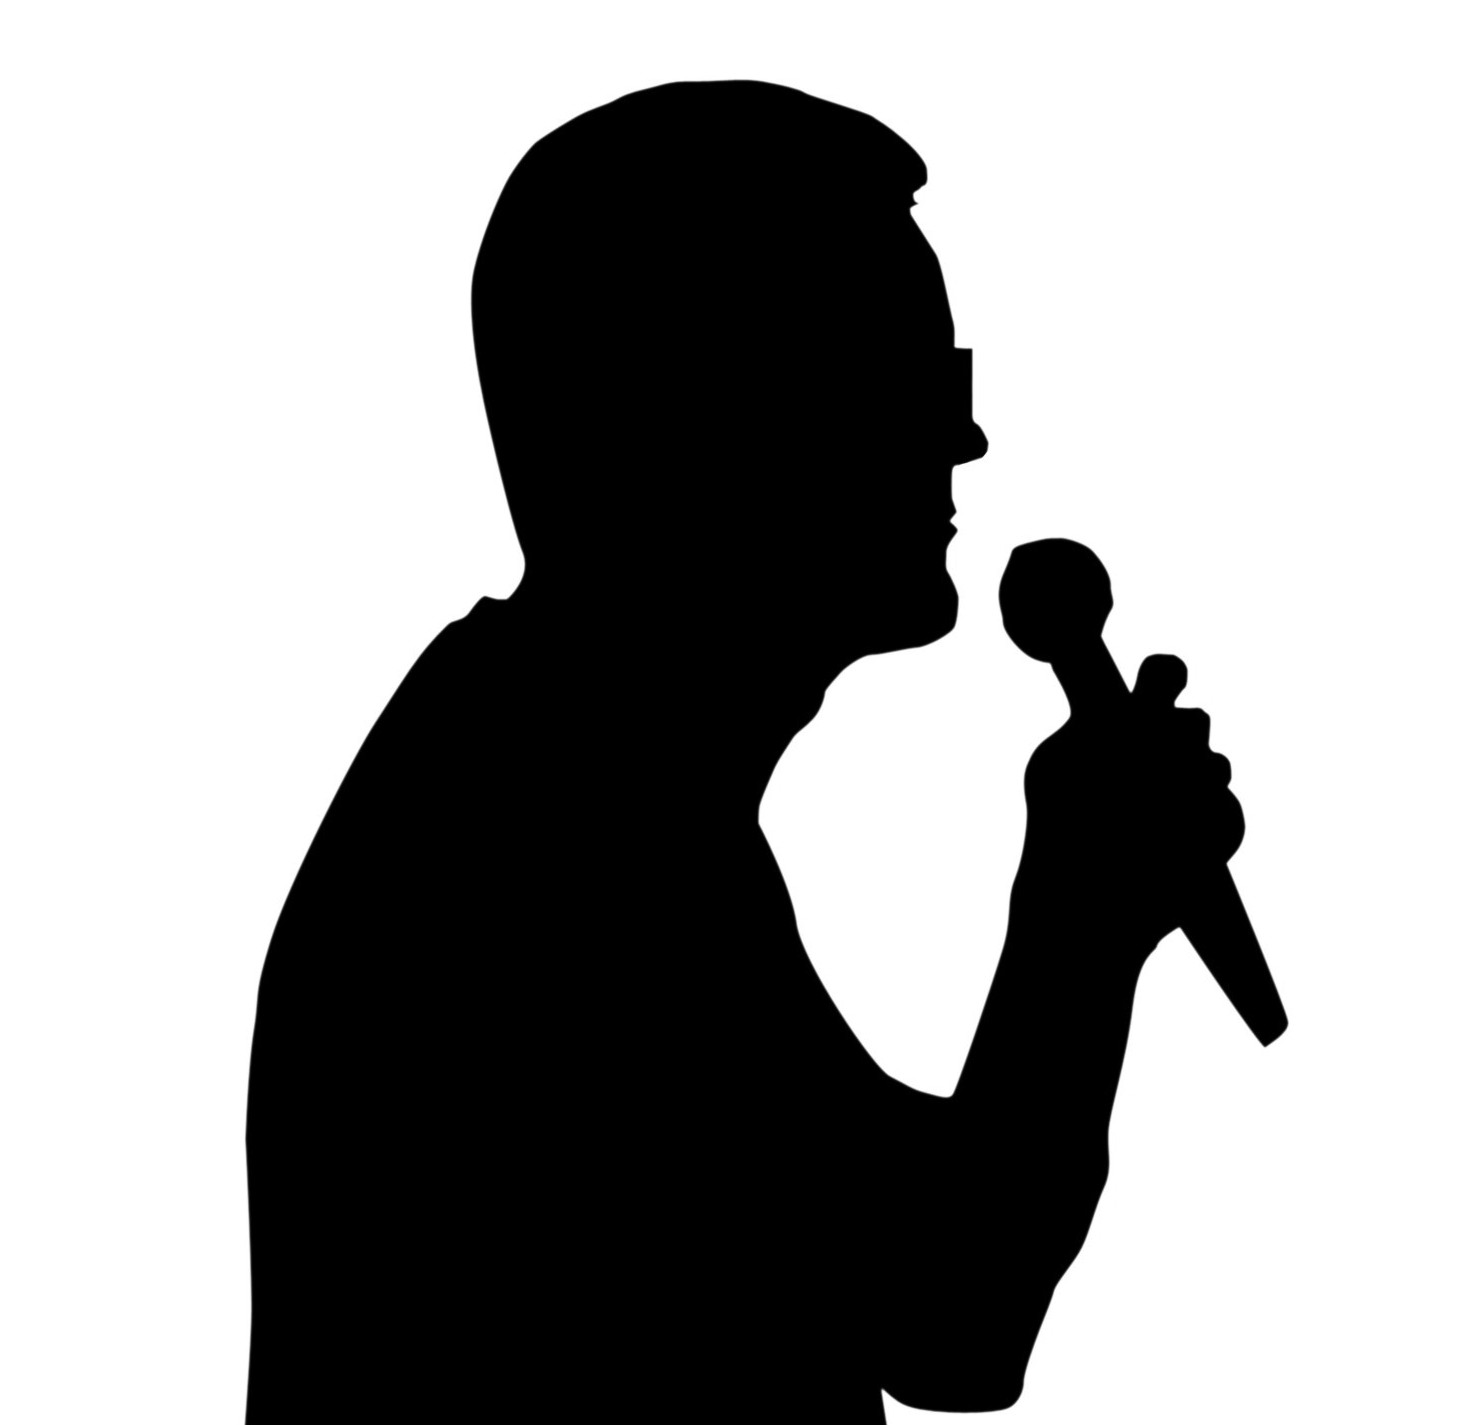 Silhouette Man With Microphone.